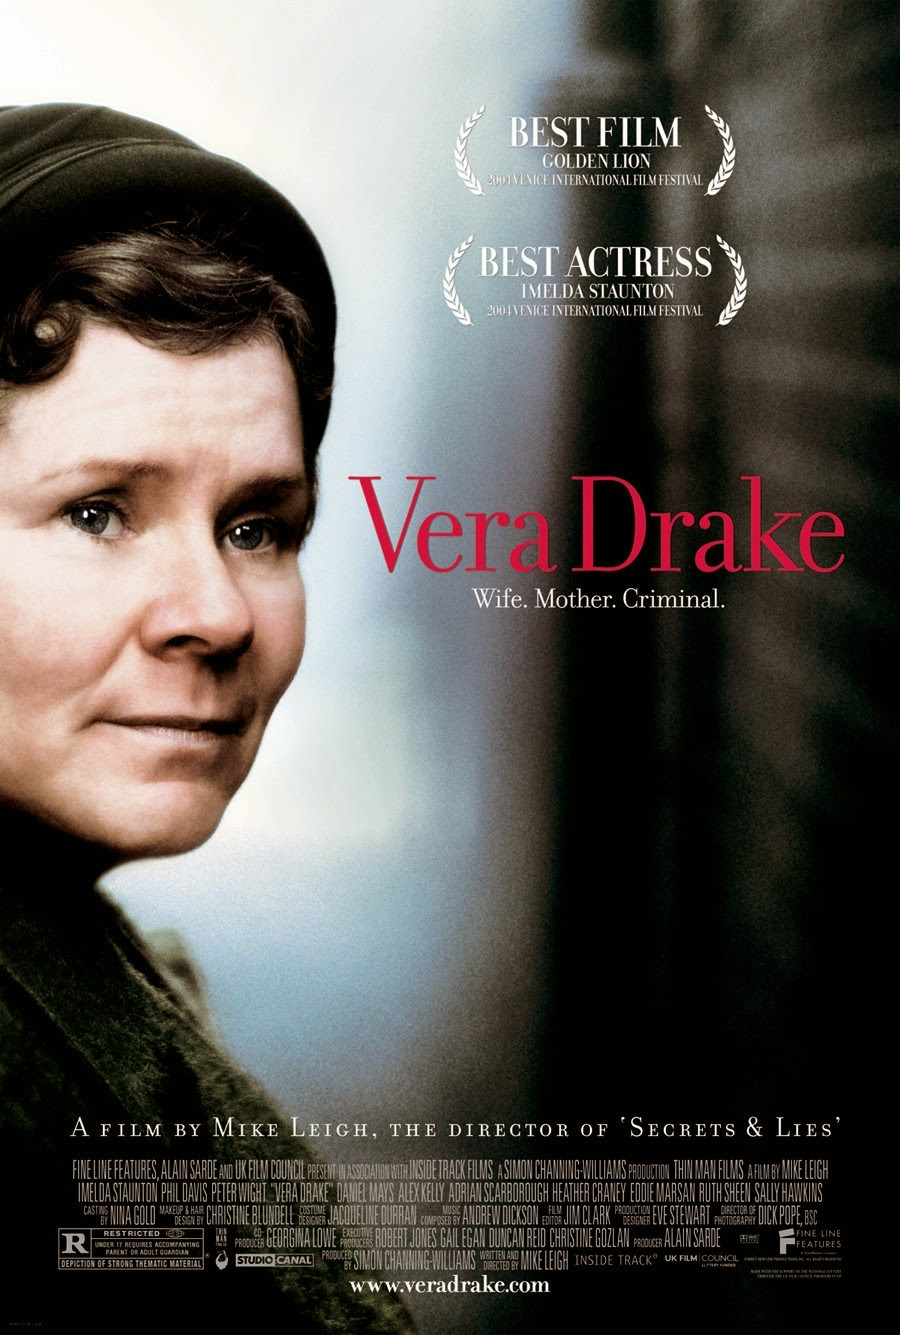 VERA DRAKE - American Poster by Crew Creative Advertising